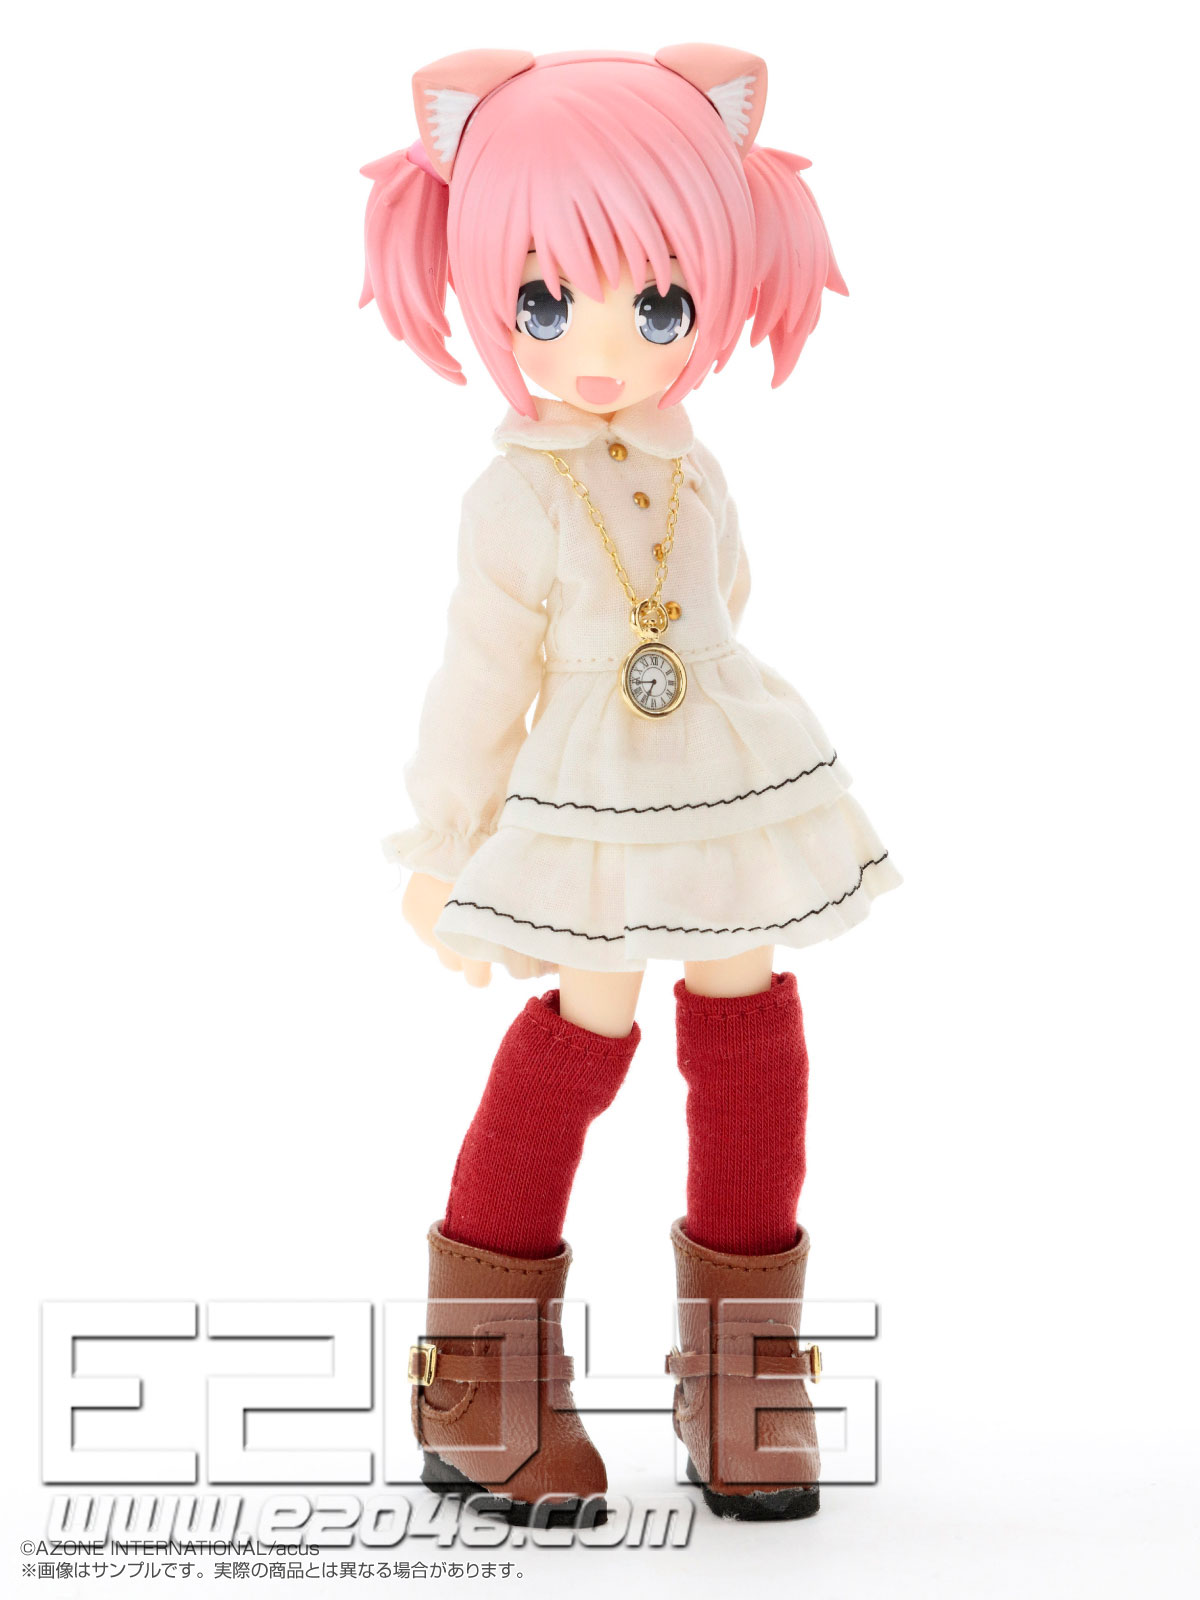 Myamu Exploration Clothes (DOLL)